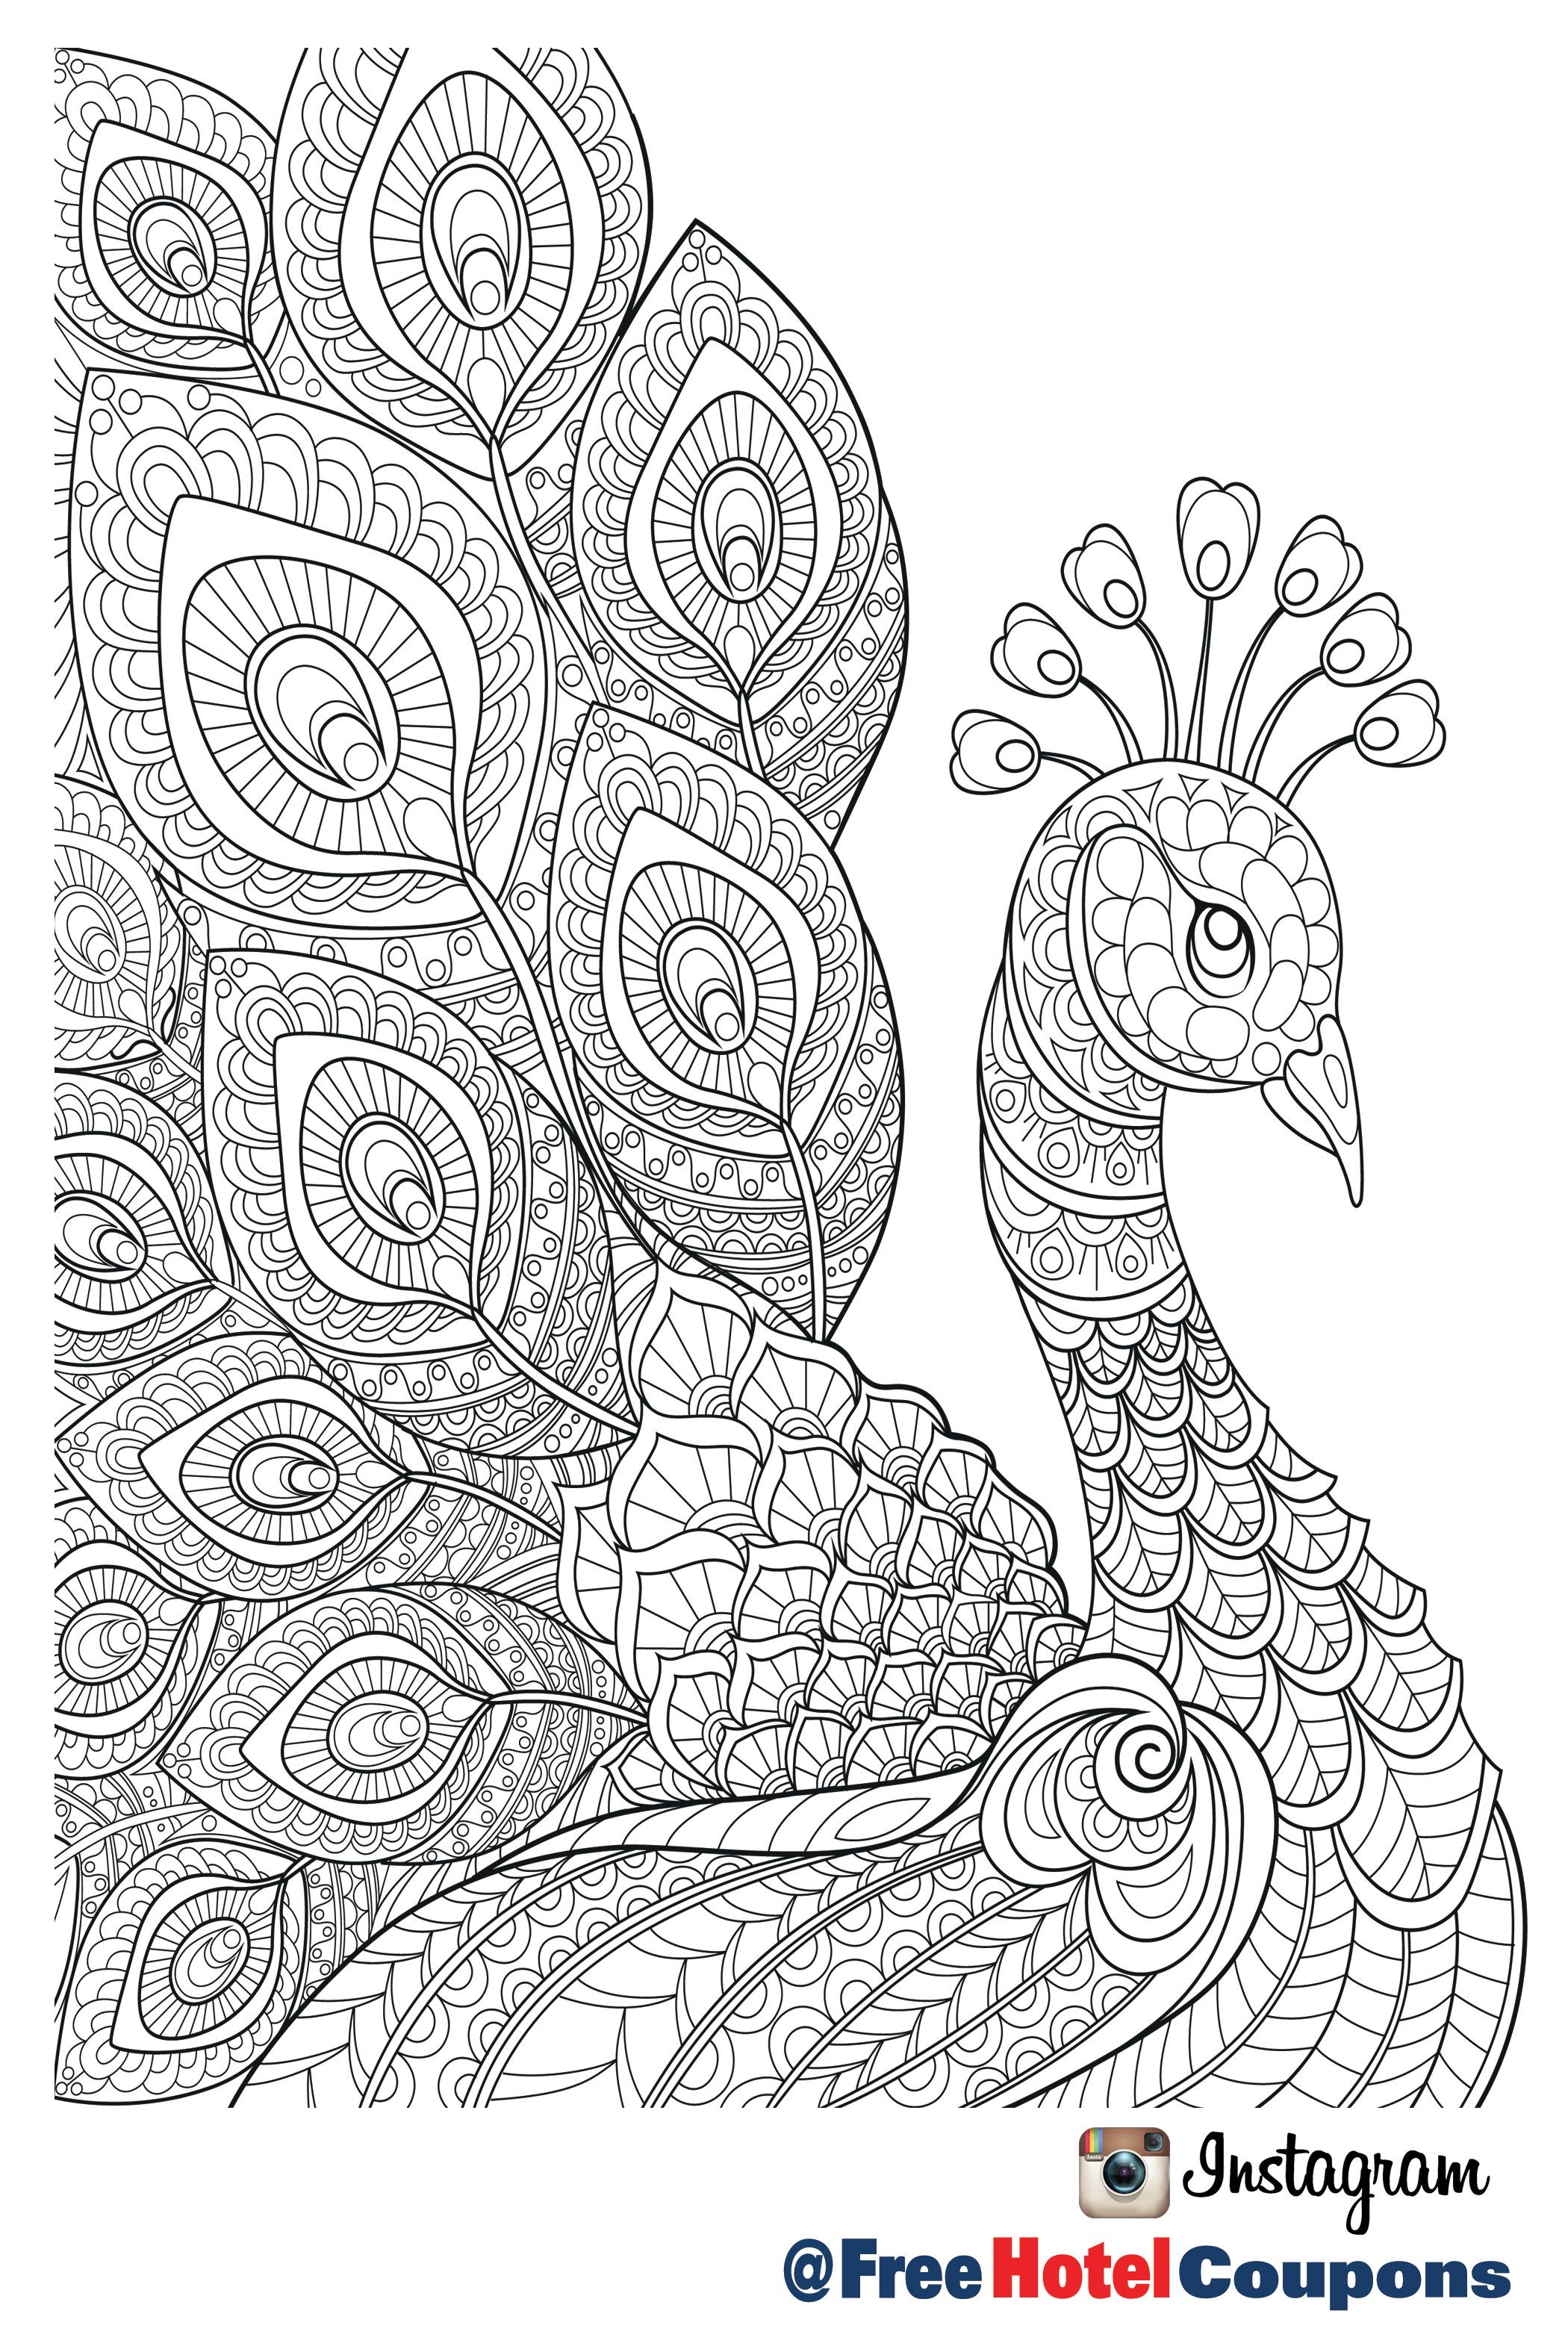 Pin by free hotel coupons on coloring pages peacock coloring pages